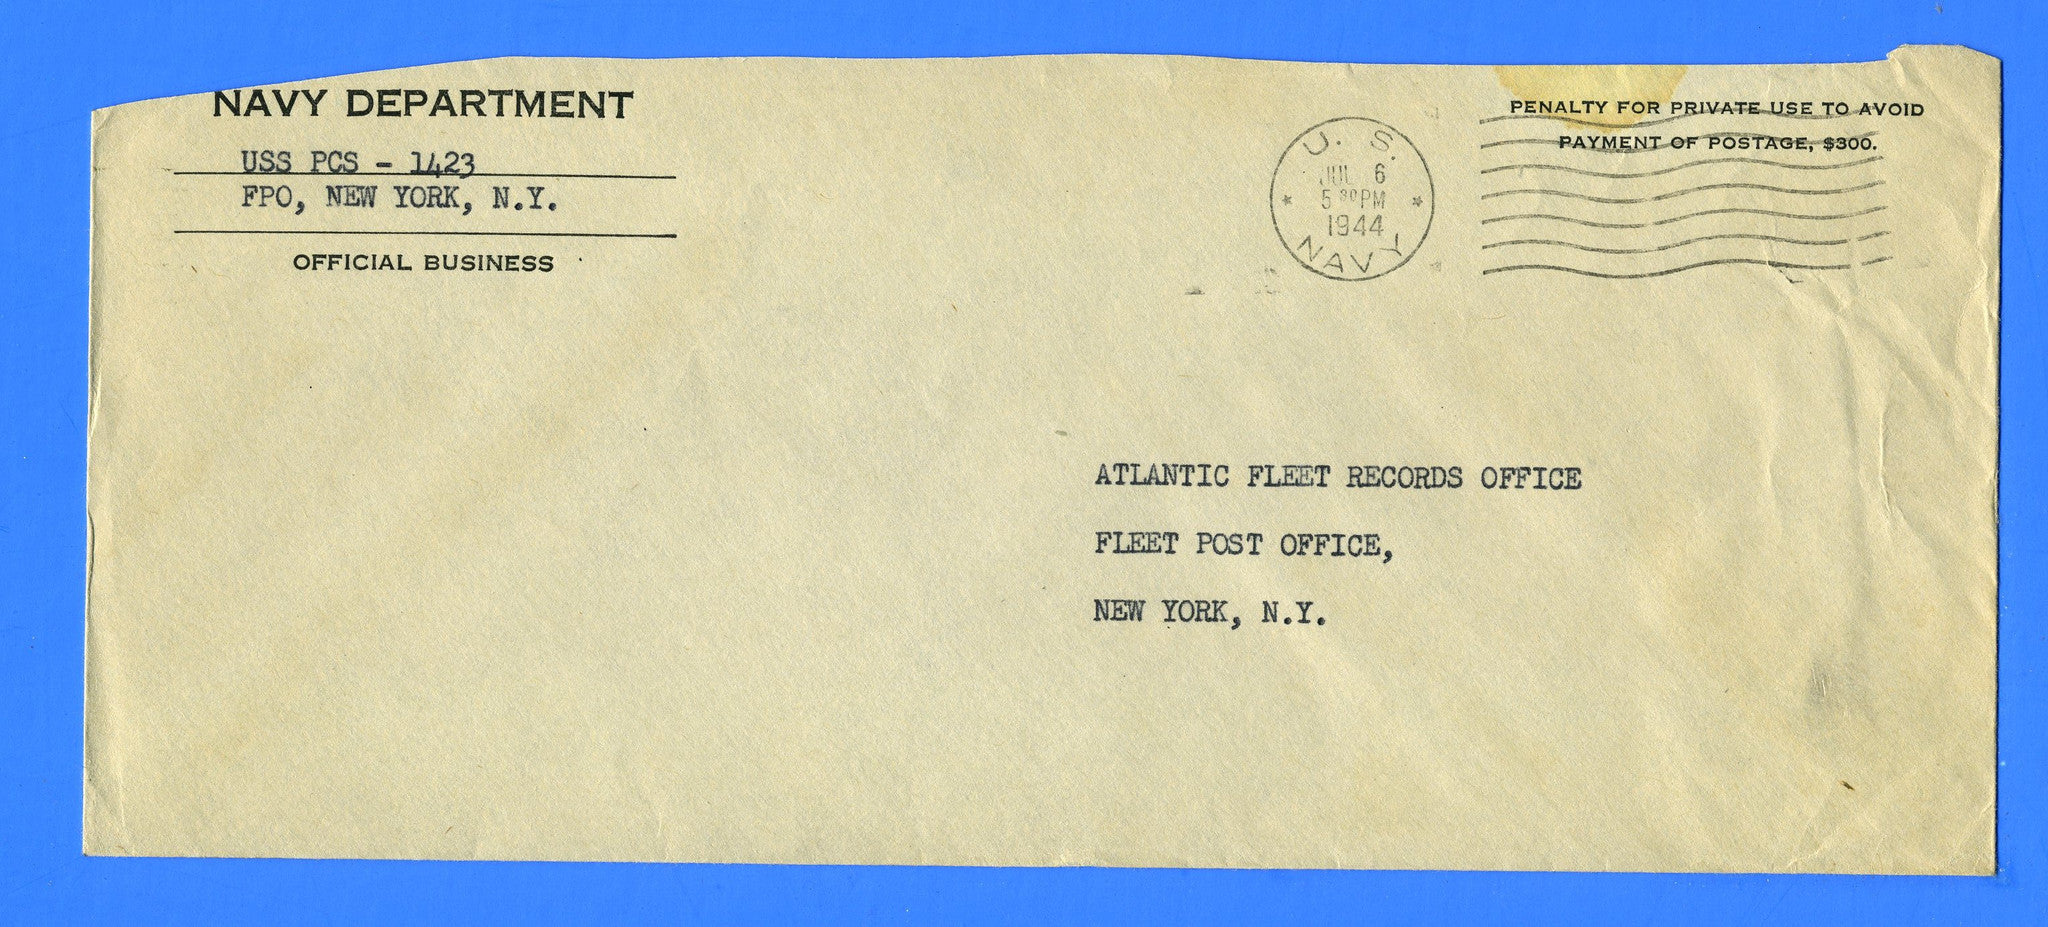 Patrol Craft Sweeper USS PCS-1423 Official Mail July 6, 1944